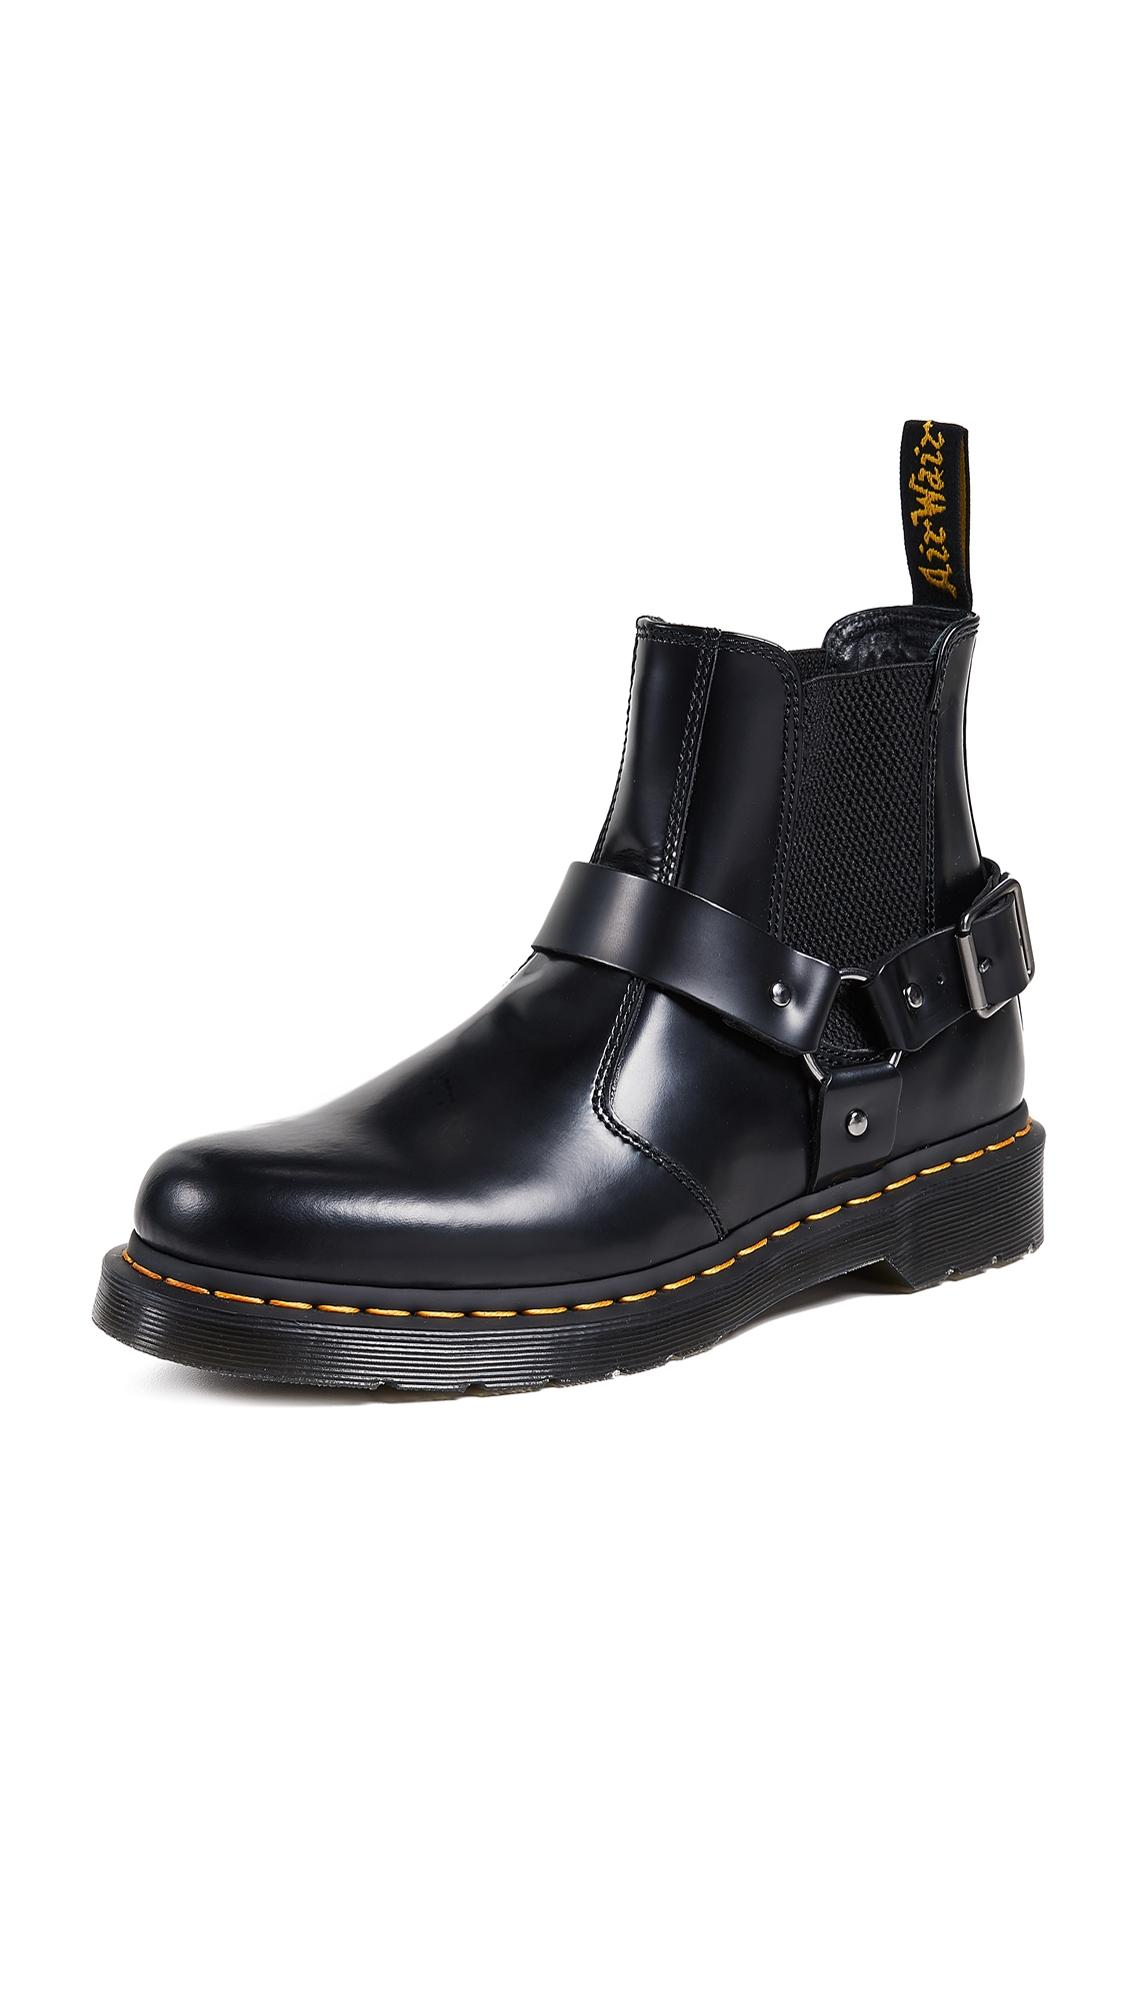 DamenHerren 8053 QUAD BLACK POLISHED SMOOTH | Dr. Martens Halbschuhe ⋆ Delanjiplush